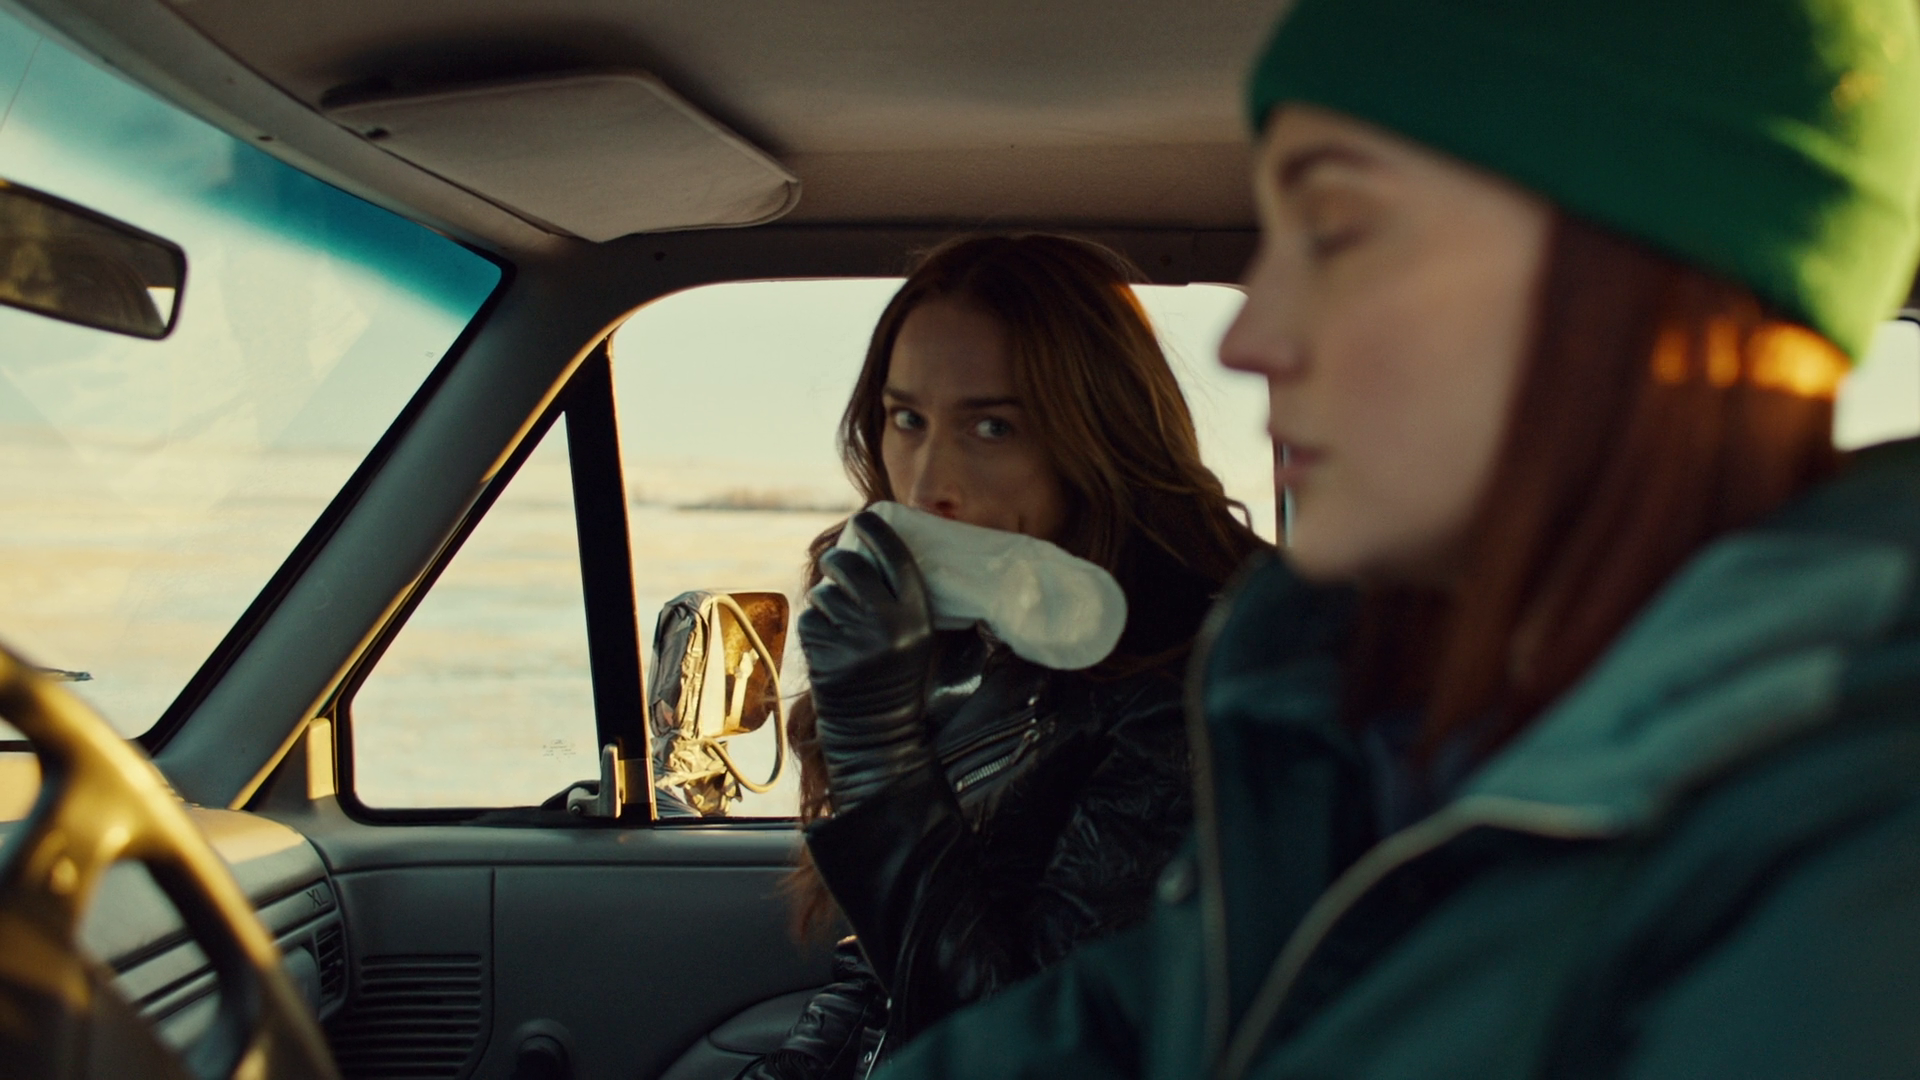 Wynonna, using a pad to stop her bloody after a well deserved punch from Nicole.